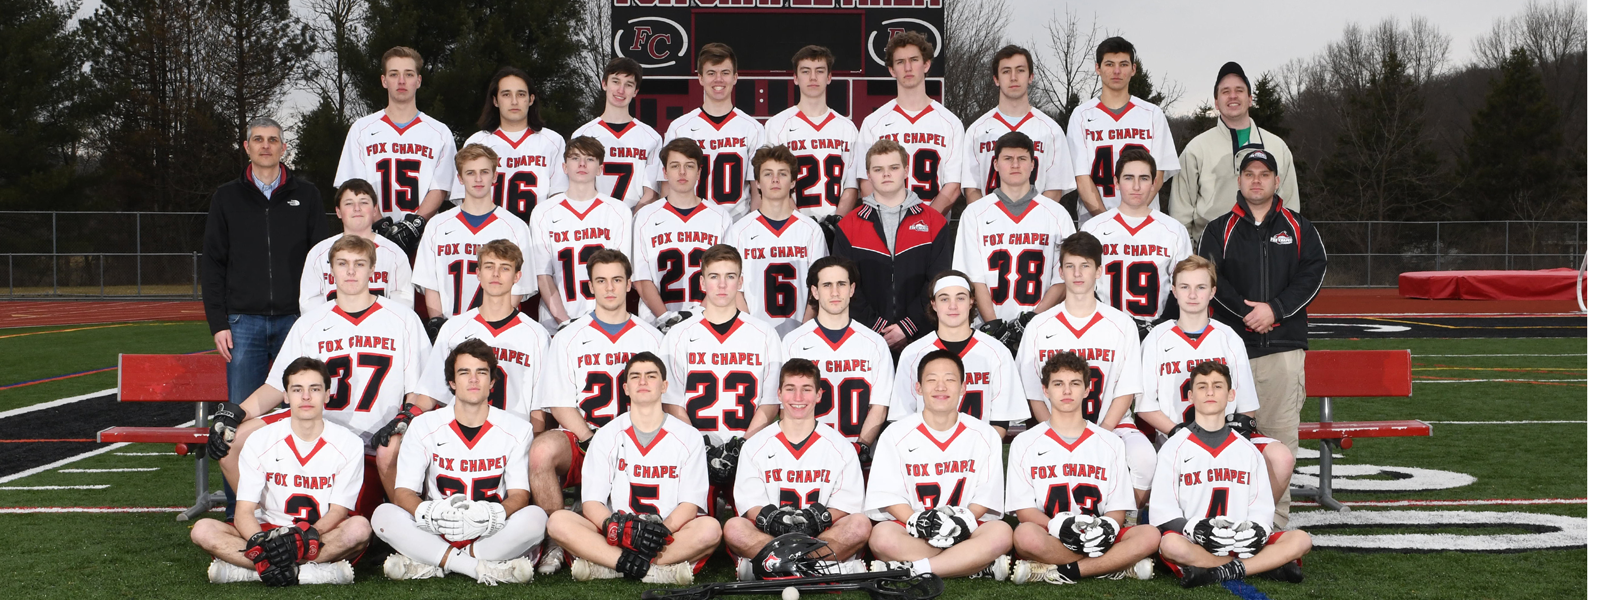 Boys' Lacrosse Team